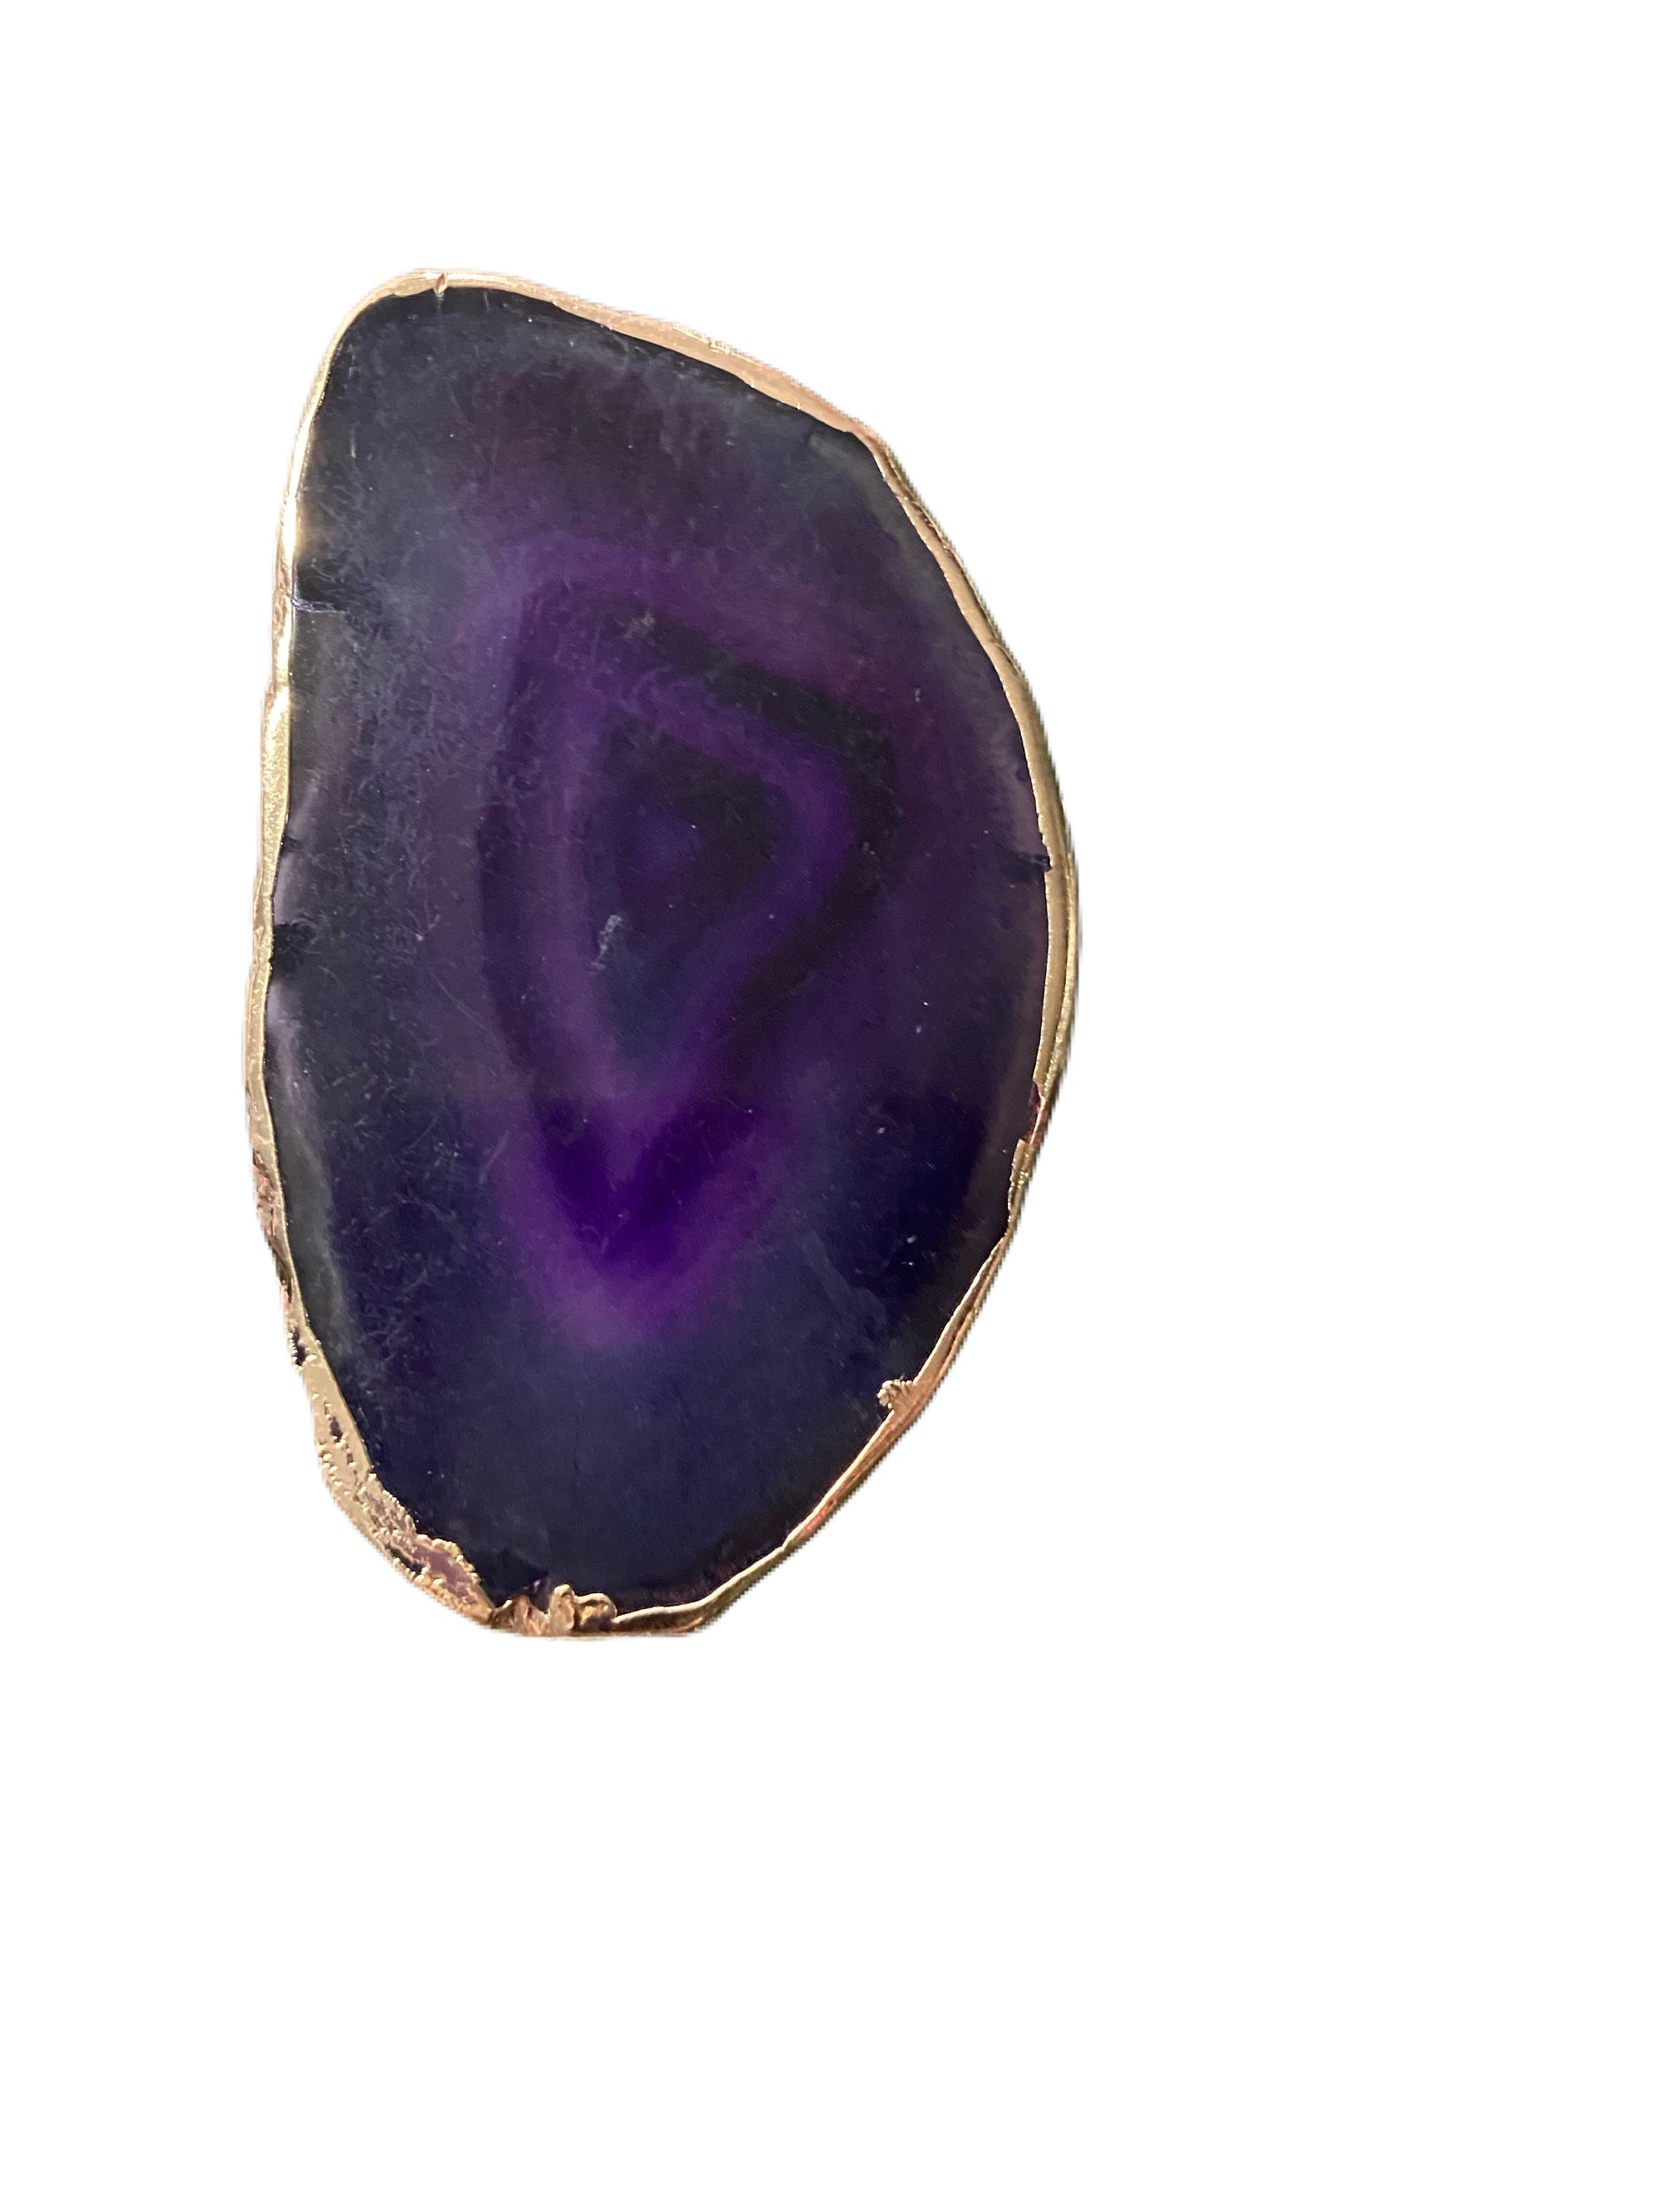 Druzy Stone pop socket